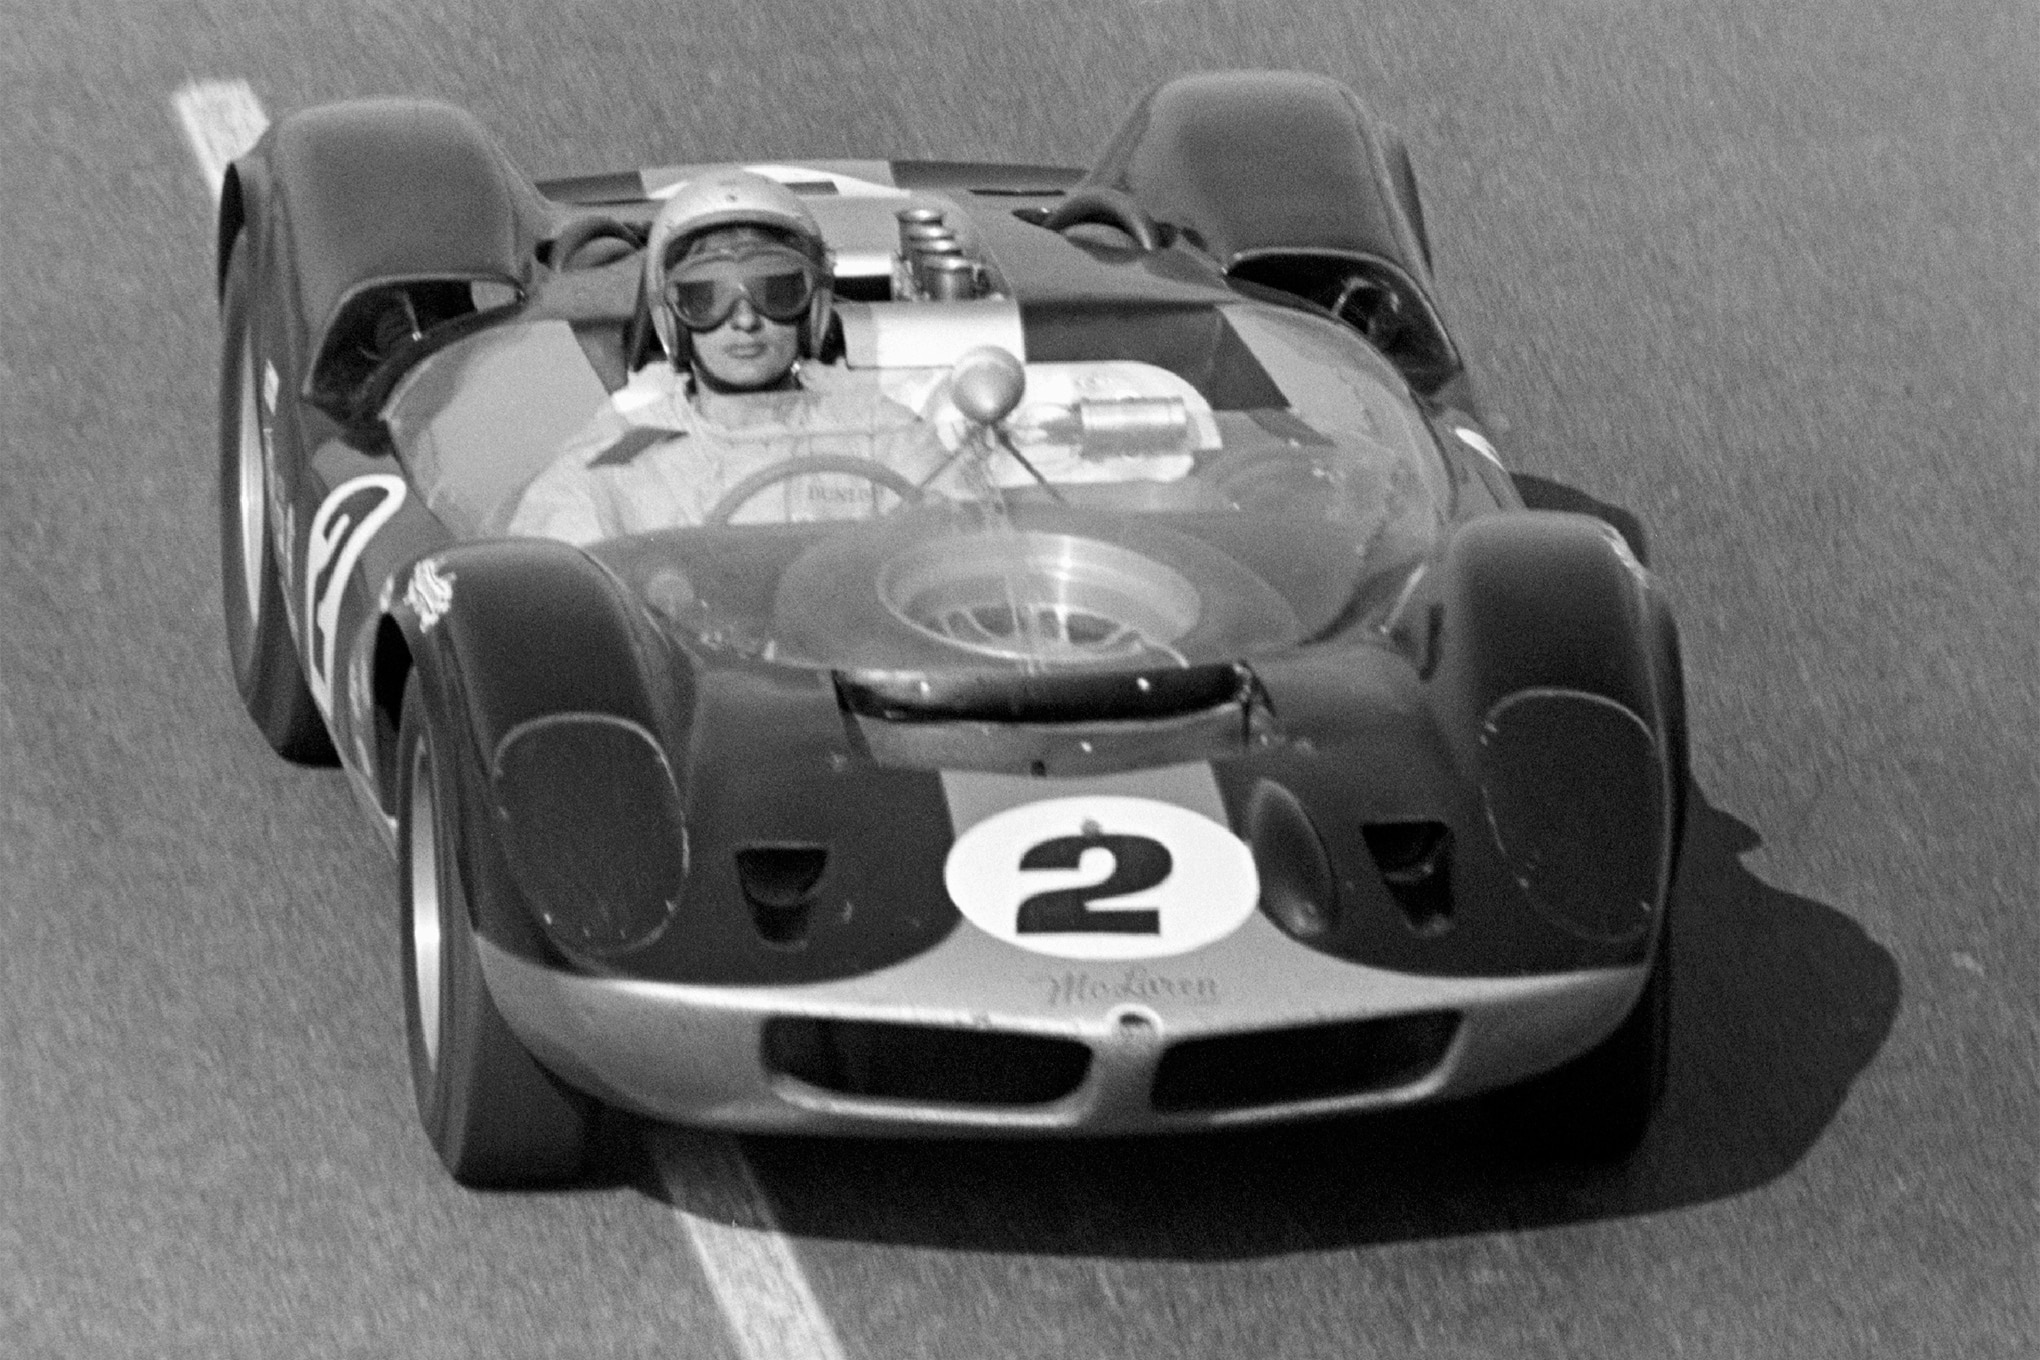 Bob D'Olivo captured 27-year-old Bruce McLaren enroute to winning Riverside's 200-mile qualifying race for the Los Angeles Times Grand Prix, the first victory of a spectacular career. Powered by a Traco-built, all-aluminum Olds F-85 V8, the prototype McLaren-Elva Mark I started on the pole for the next day's main event and led two laps before retiring with breakage. (See Jan. '65 MT.)